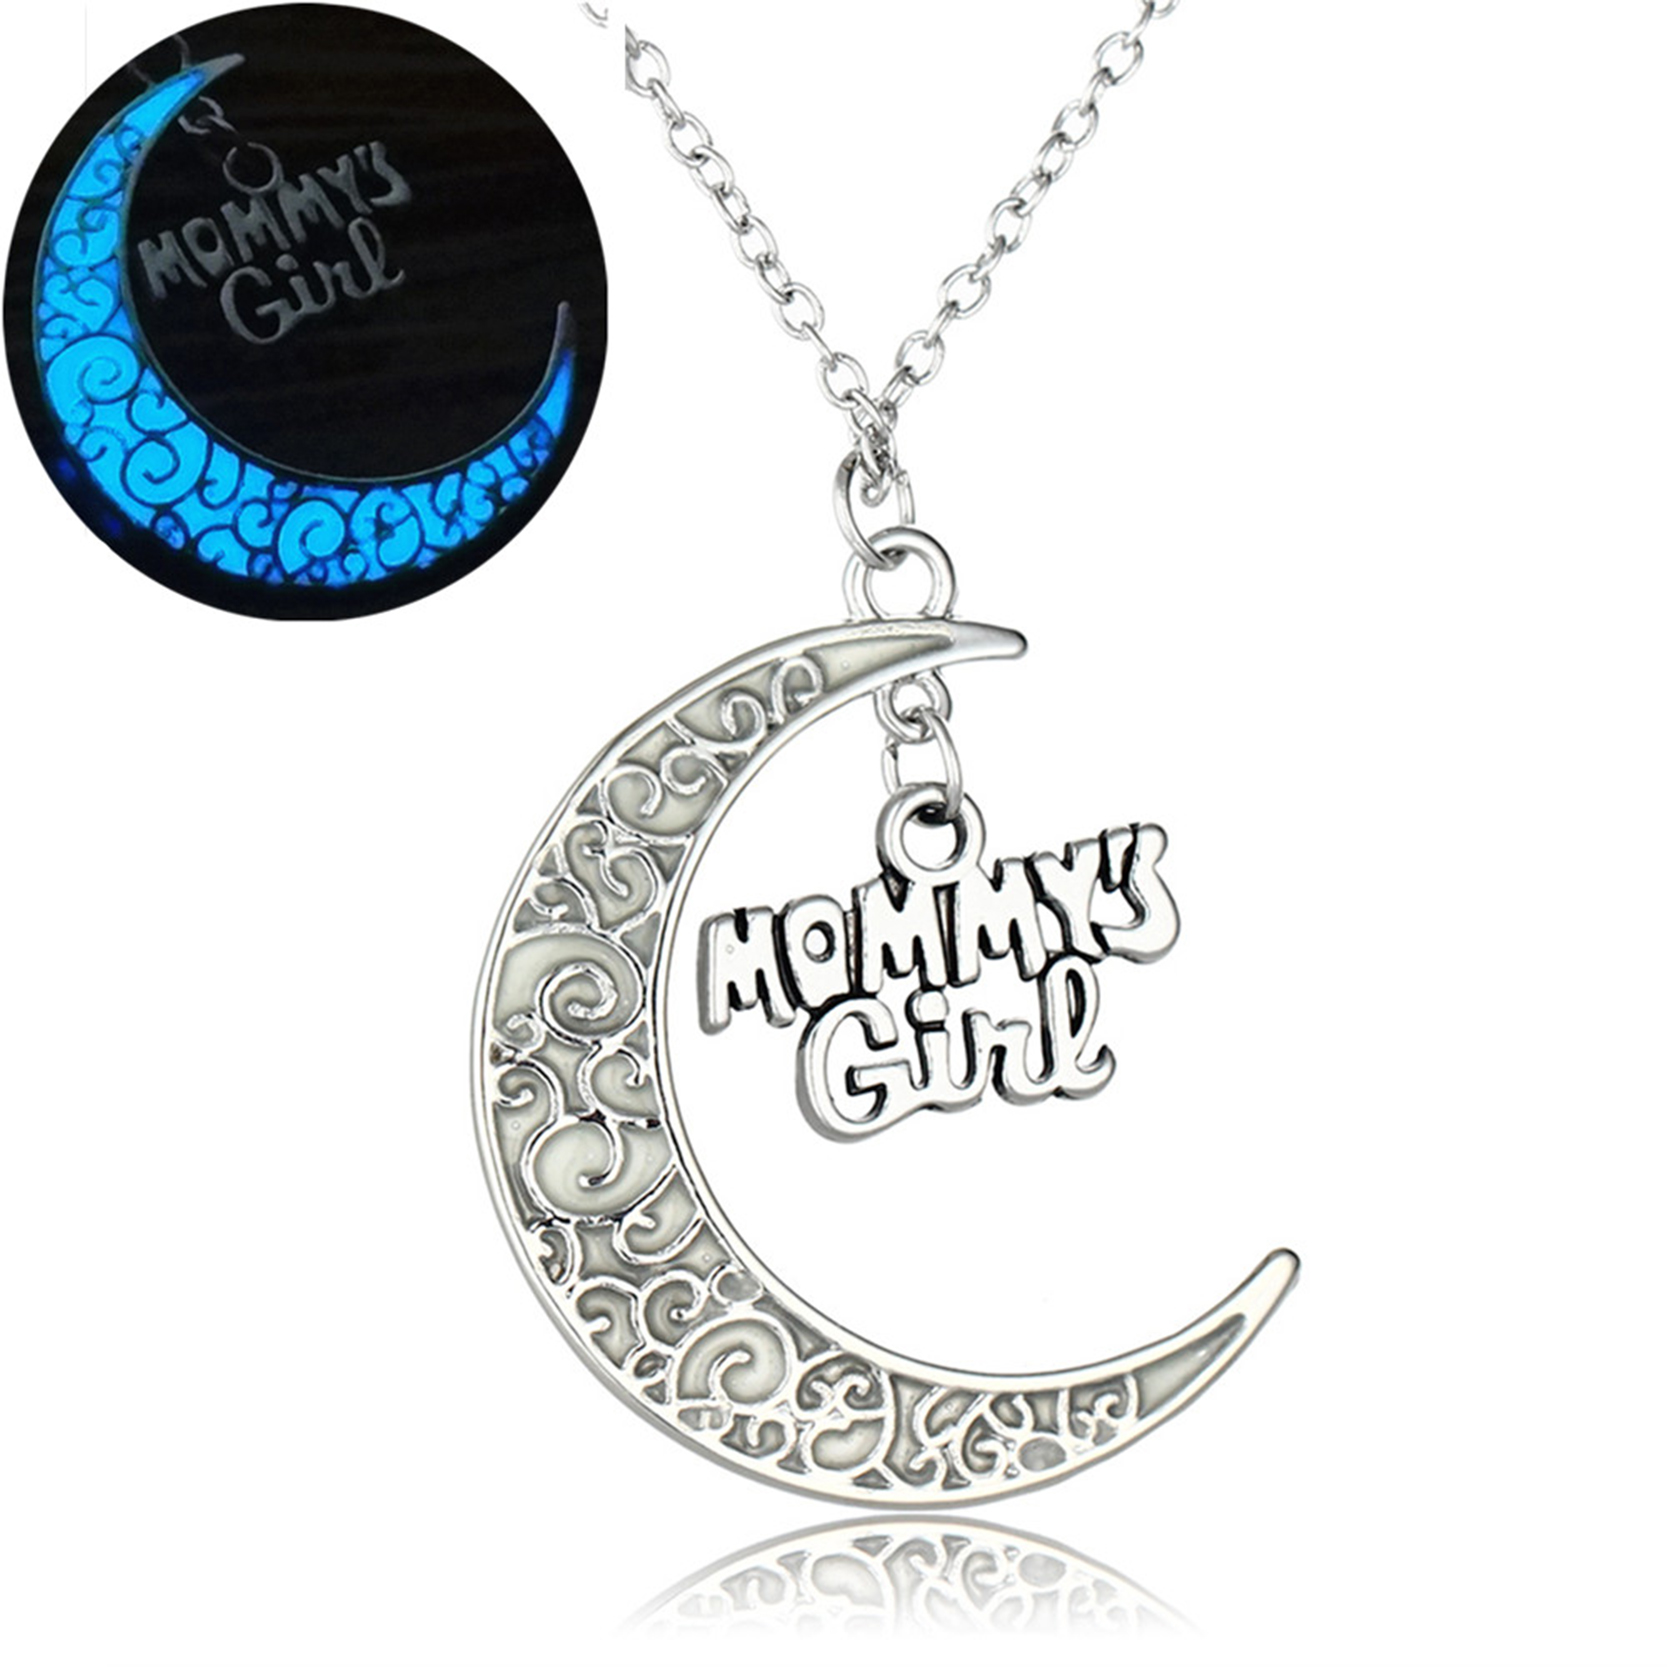 Glow in the dark jewelry silver color with crescent letter of glow in the dark jewelry silver color with crescent letter of mommy noctilucent pendant necklace for mothers day gift aloadofball Image collections